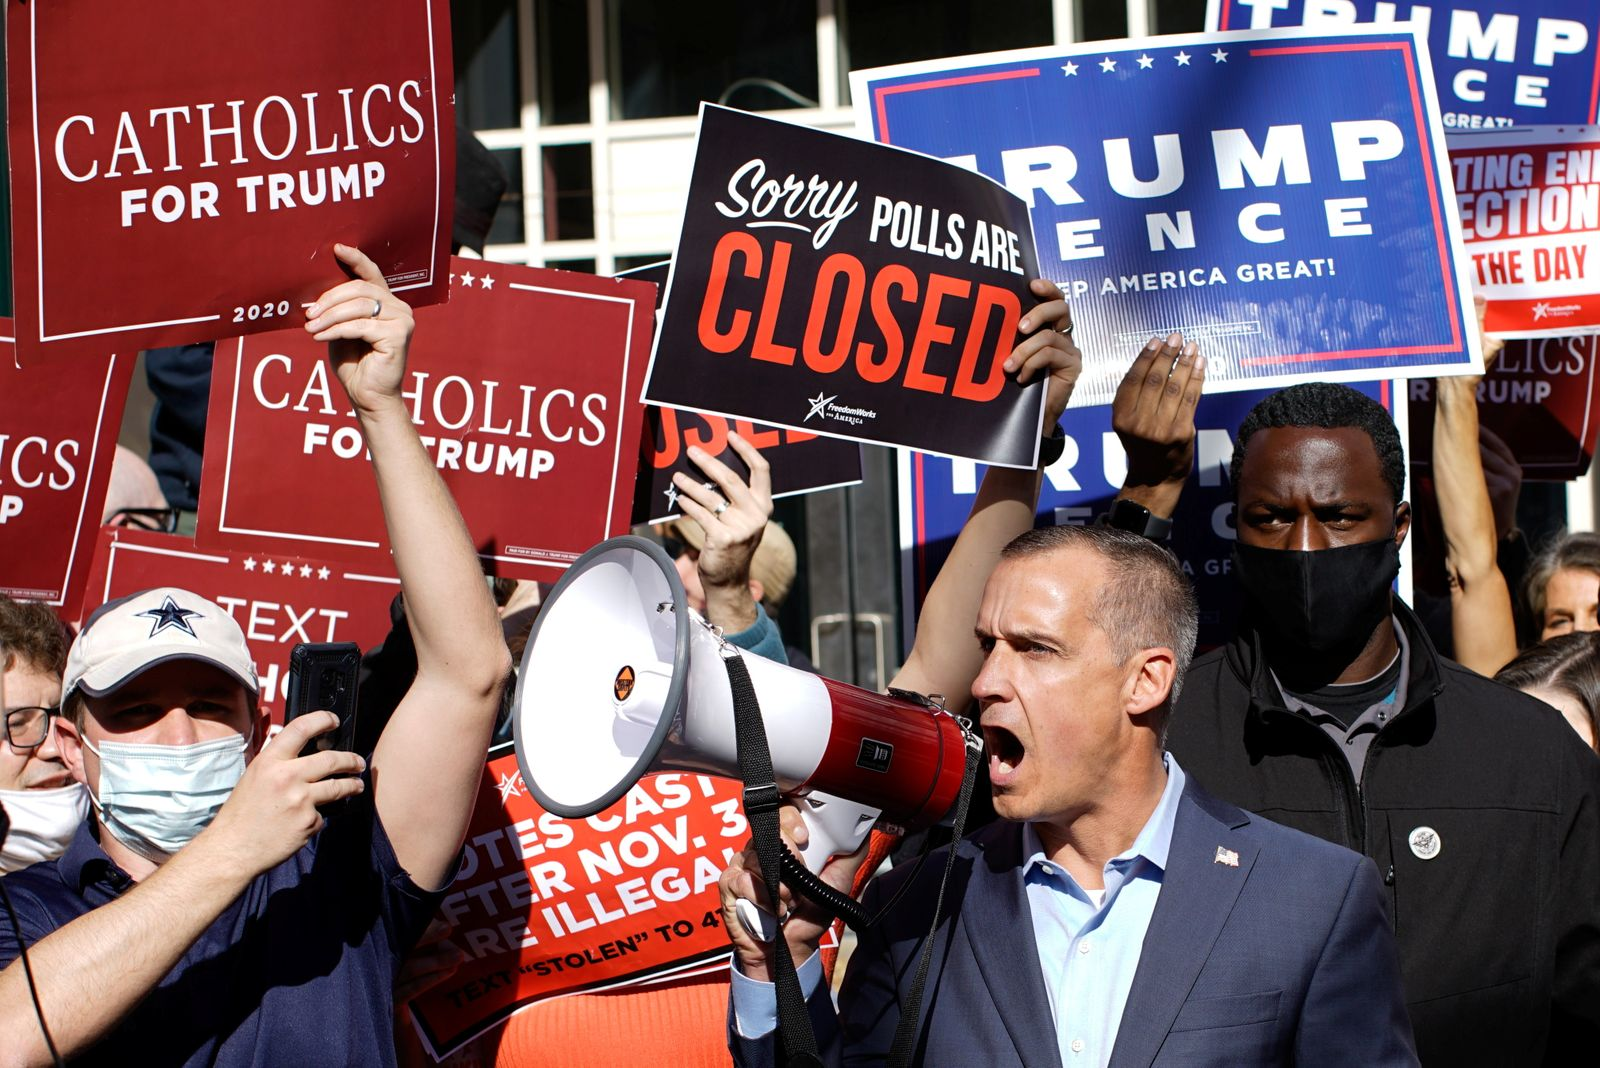 Former campaign senior adviser Of U.S. president Donald Trump, Corey Lewandowski uses a megaphone as supporters of U.S. president Donald Trump rally as votes continue to be counted following the 2020 U.S. presidential election, in Philadelphia